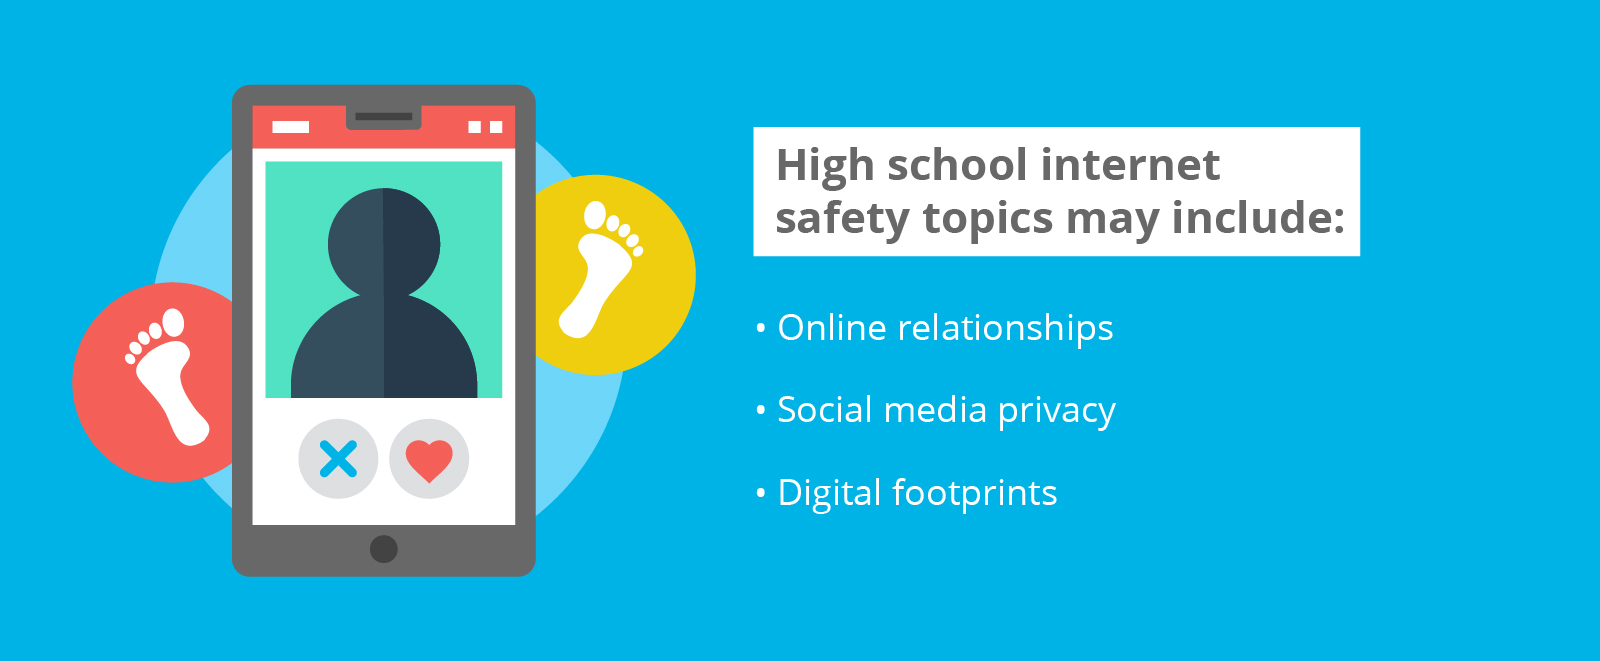 A list of topics to be covered in a high school internet safety class